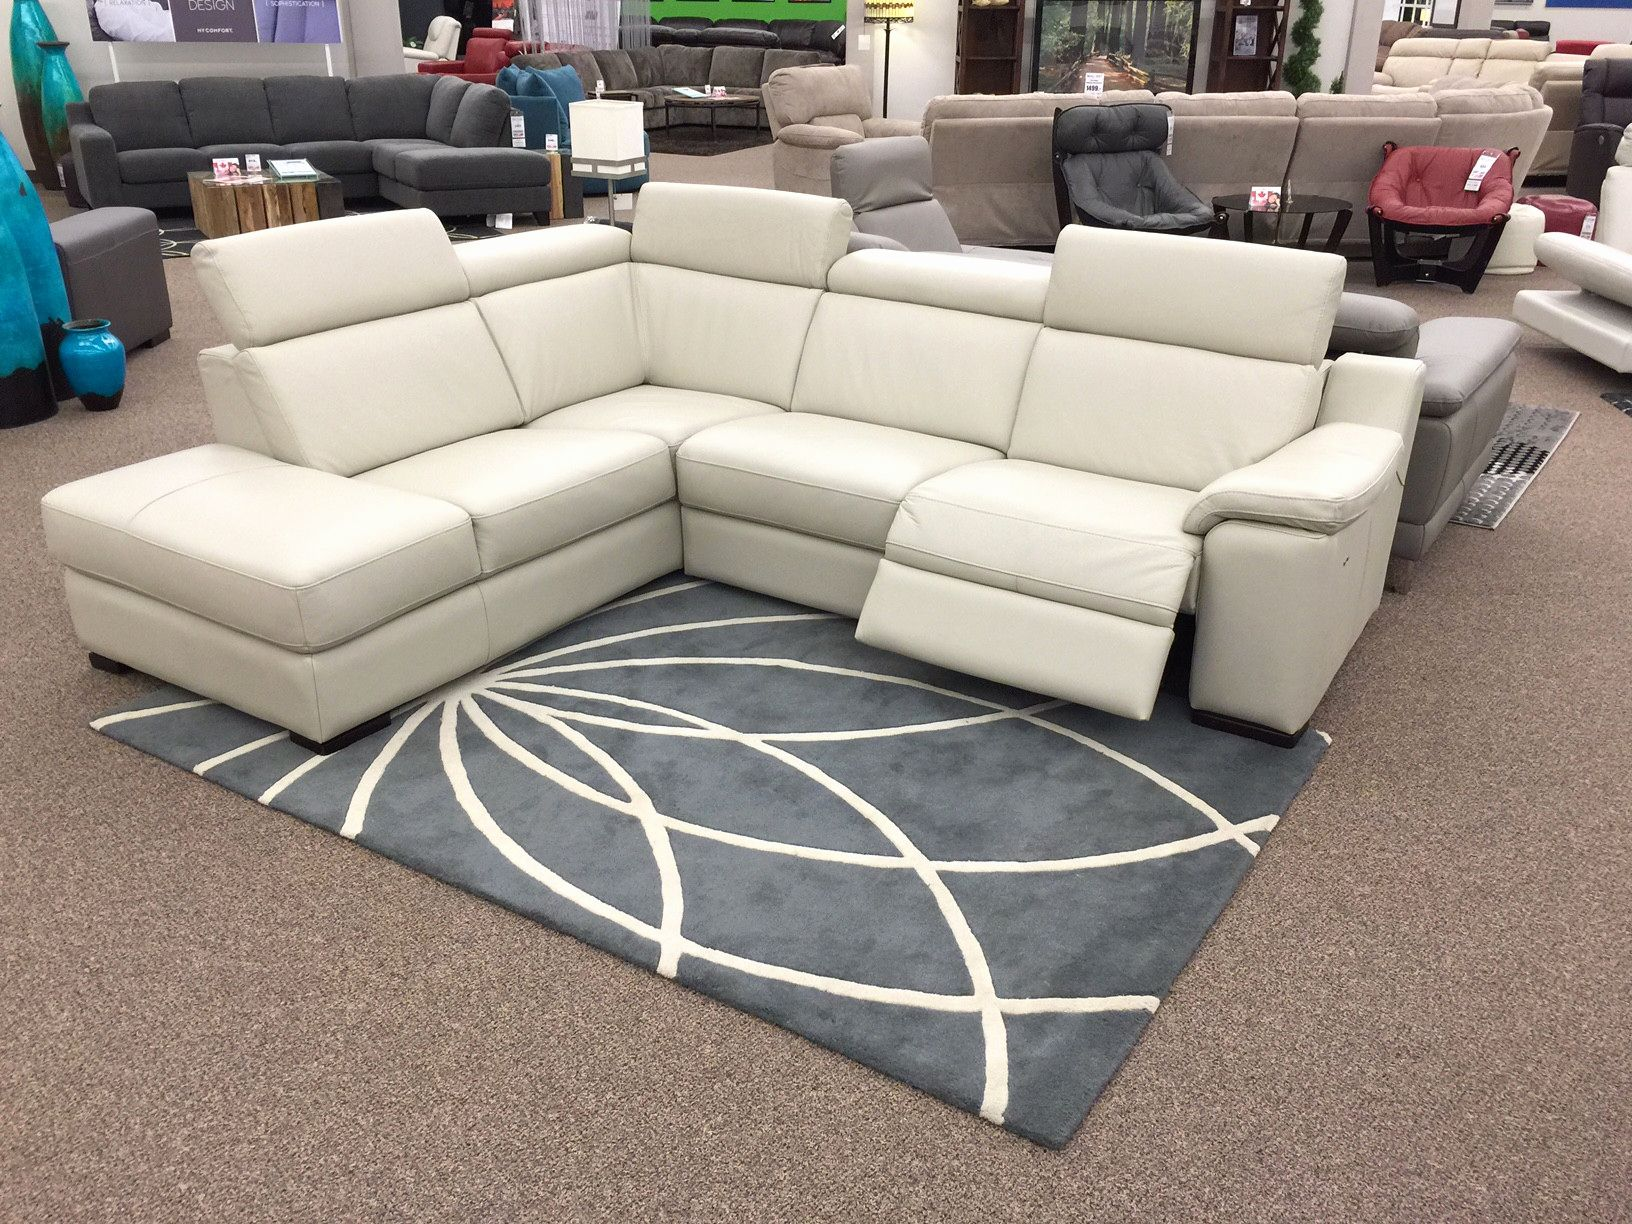 50 New Pottery Barn Leather sofa Reviews Images Trendy